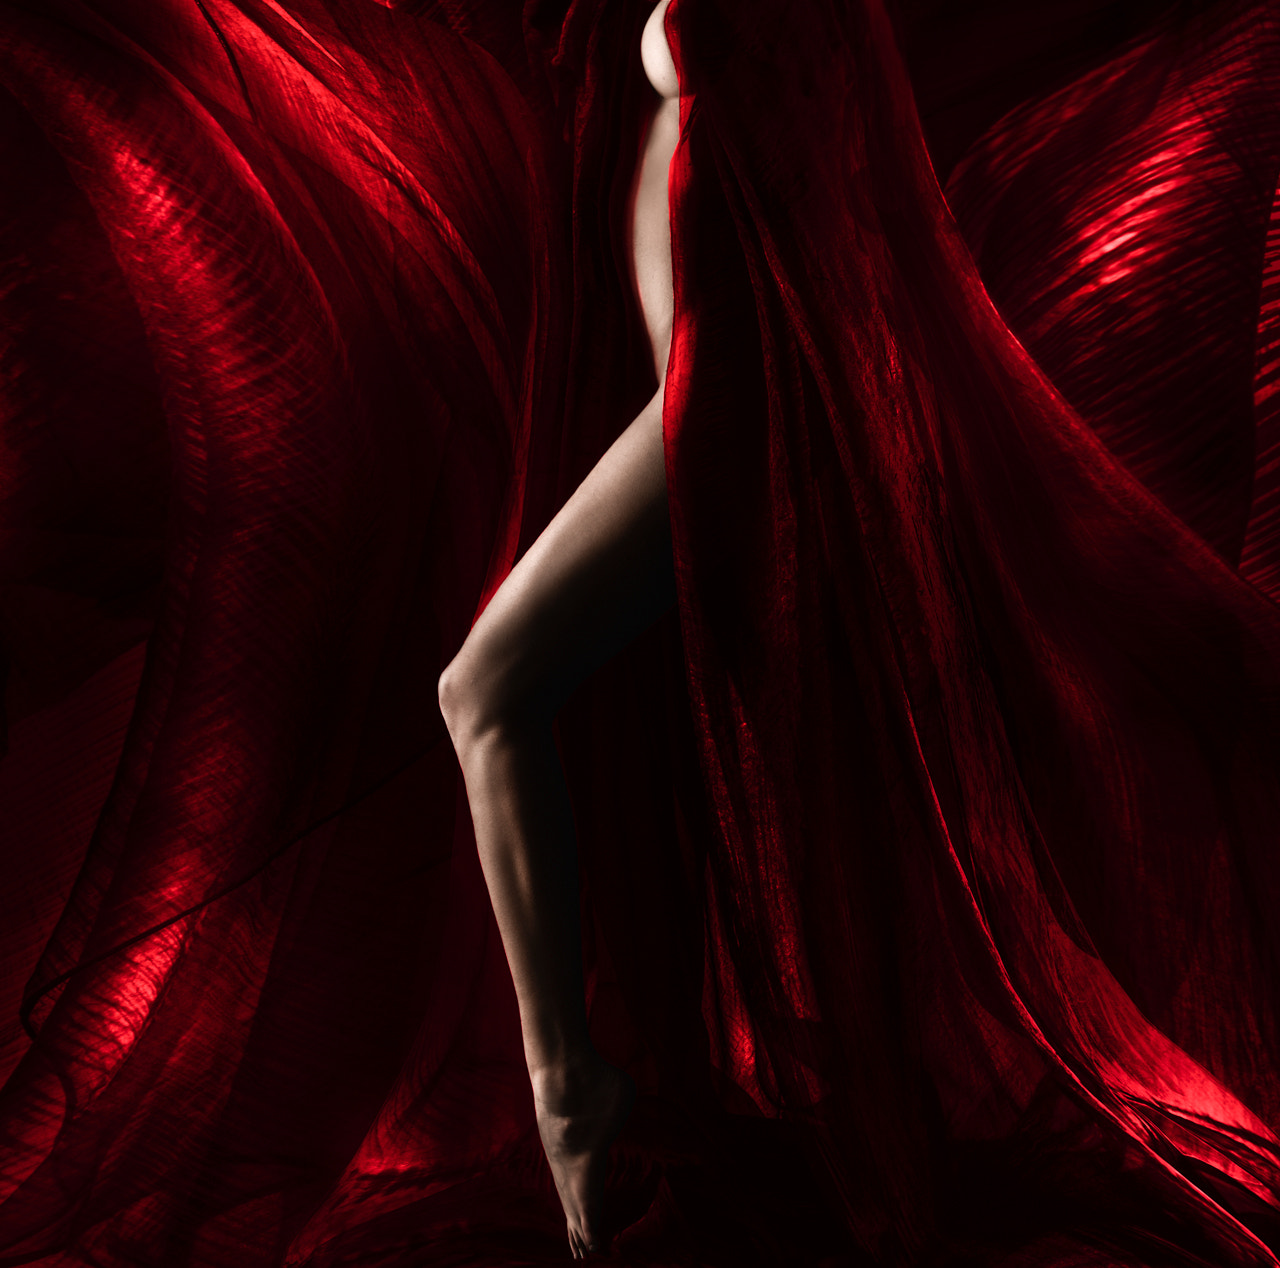 Photograph red curtain by Patrick Odorizzi on 500px